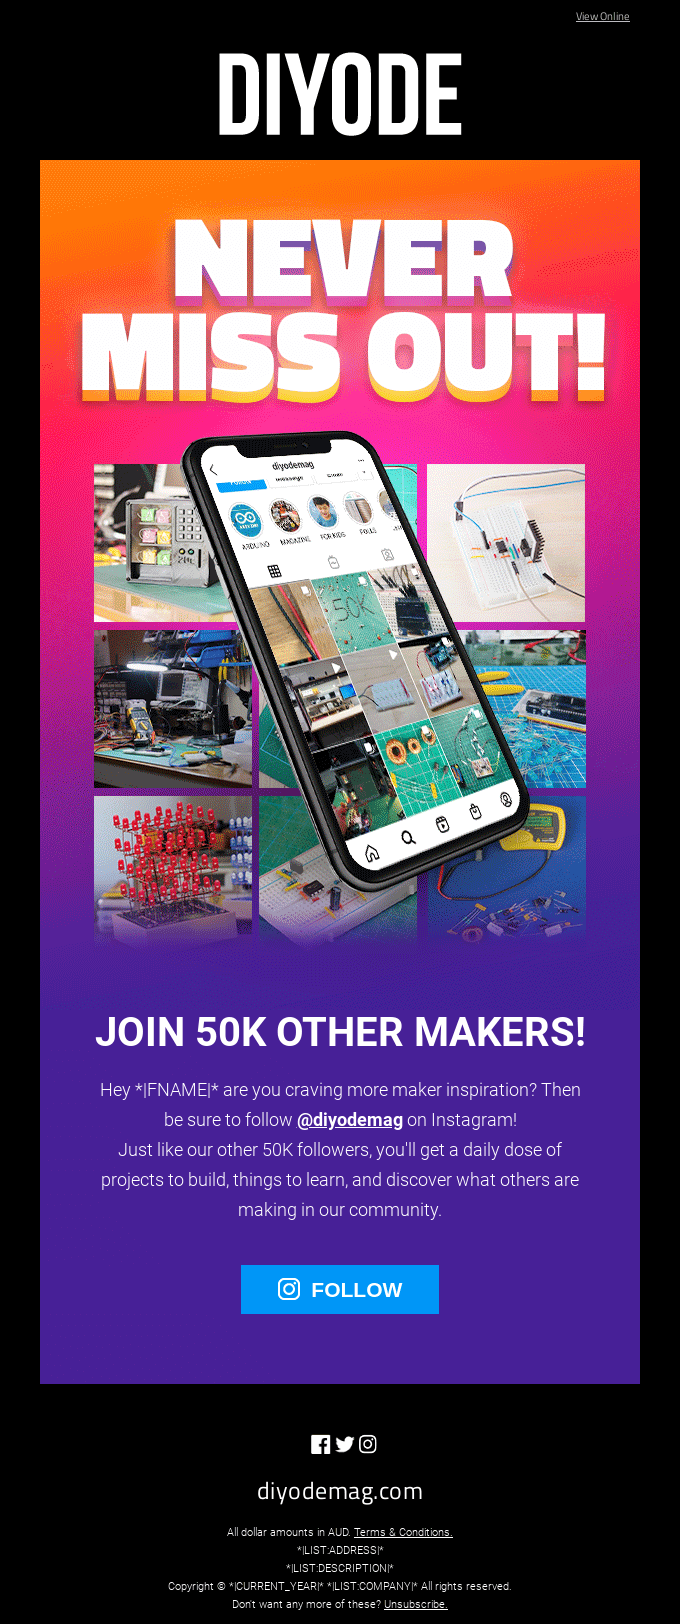 Never Miss Out! Join 50K Other Makers on Instagram!